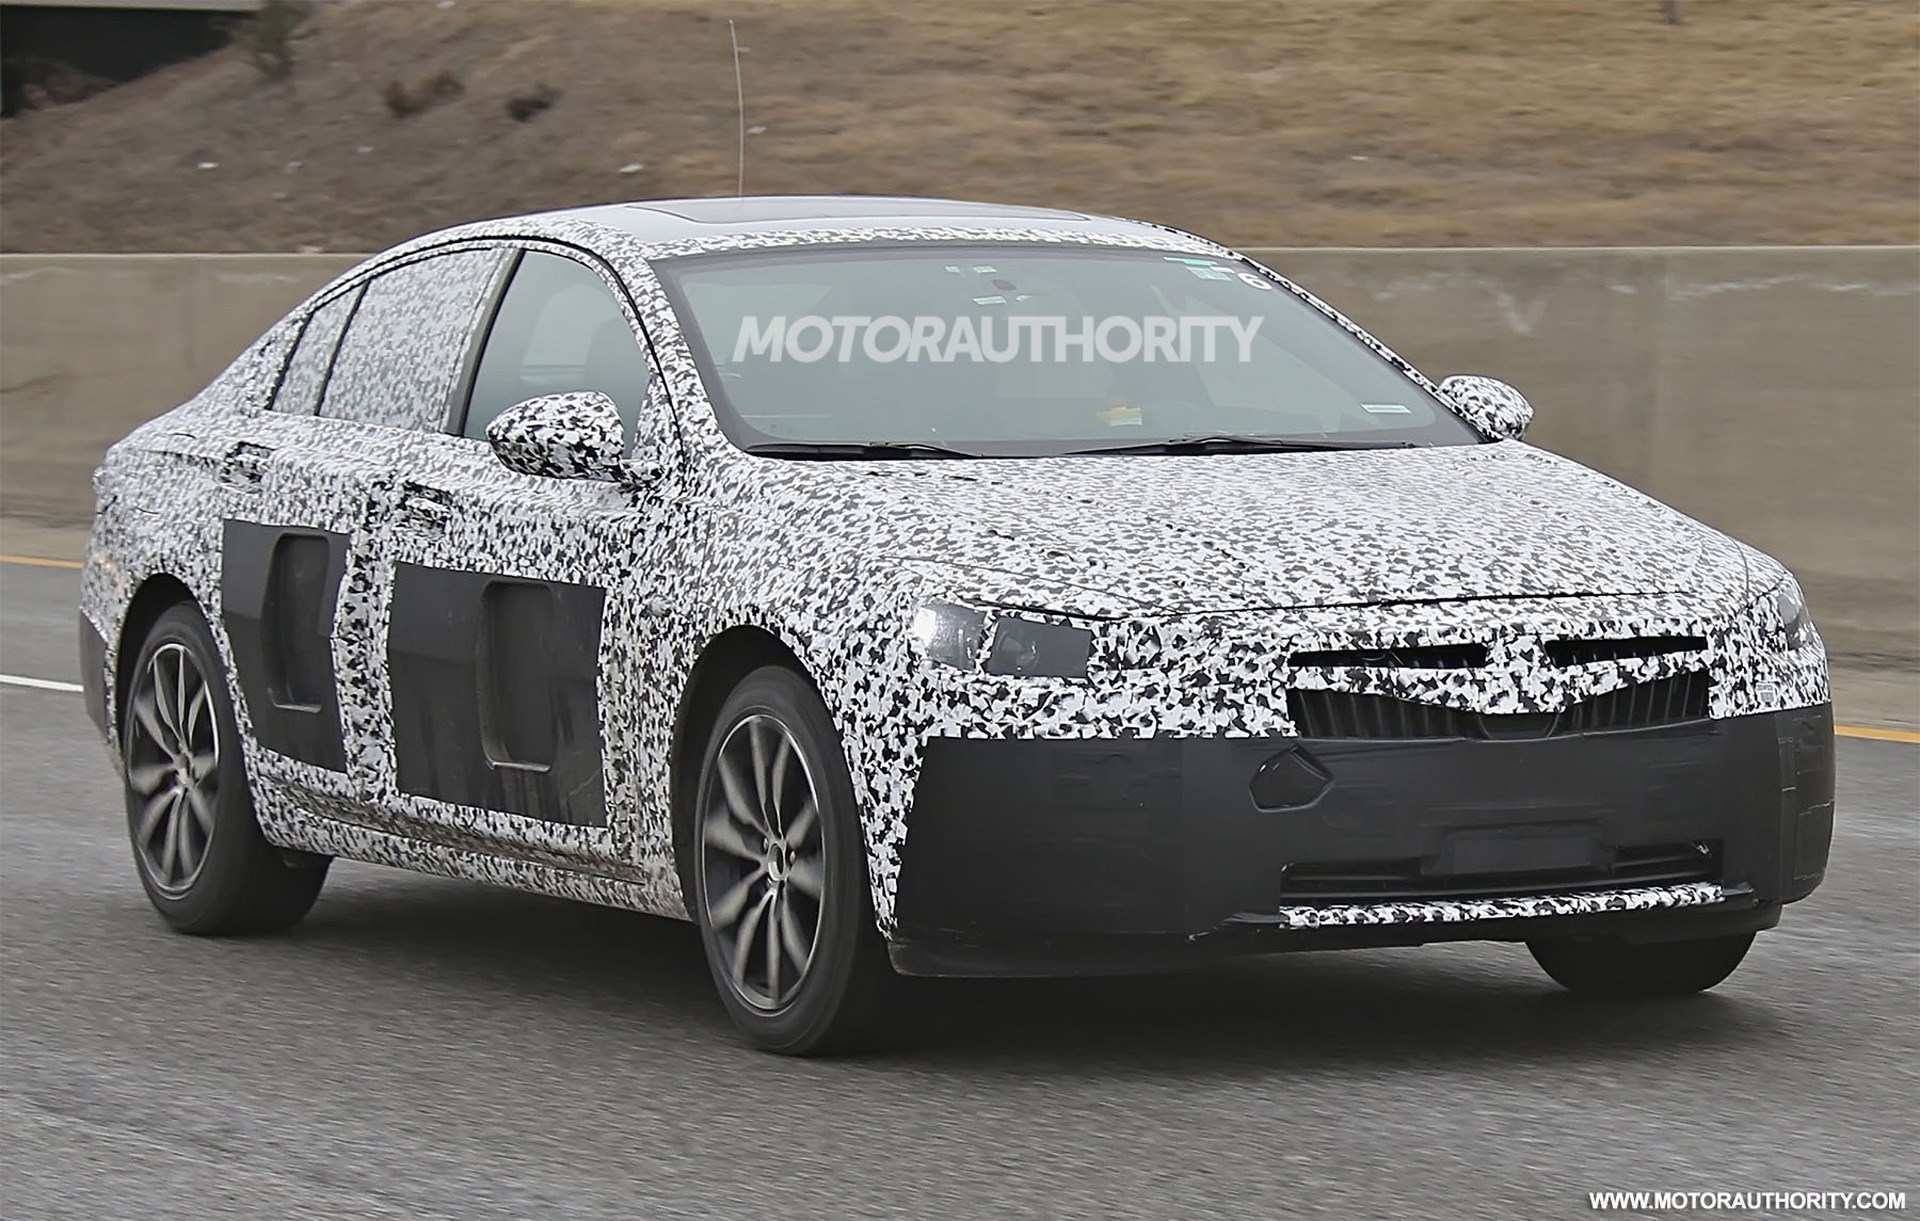 63 All New 2019 Buick Verano Spy Images